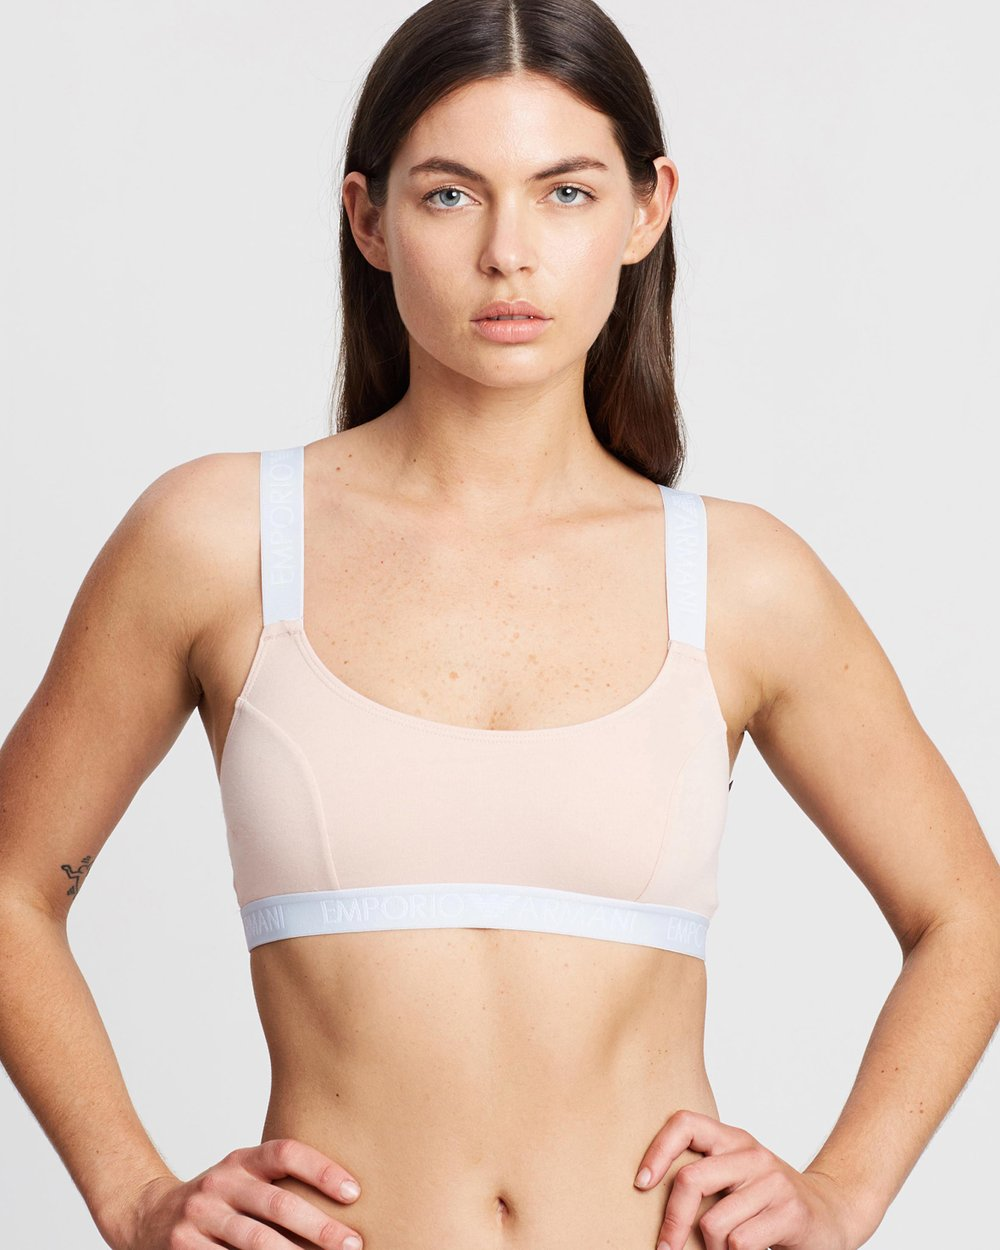 72daf7baeb Knitted Bralette by Emporio Armani Online